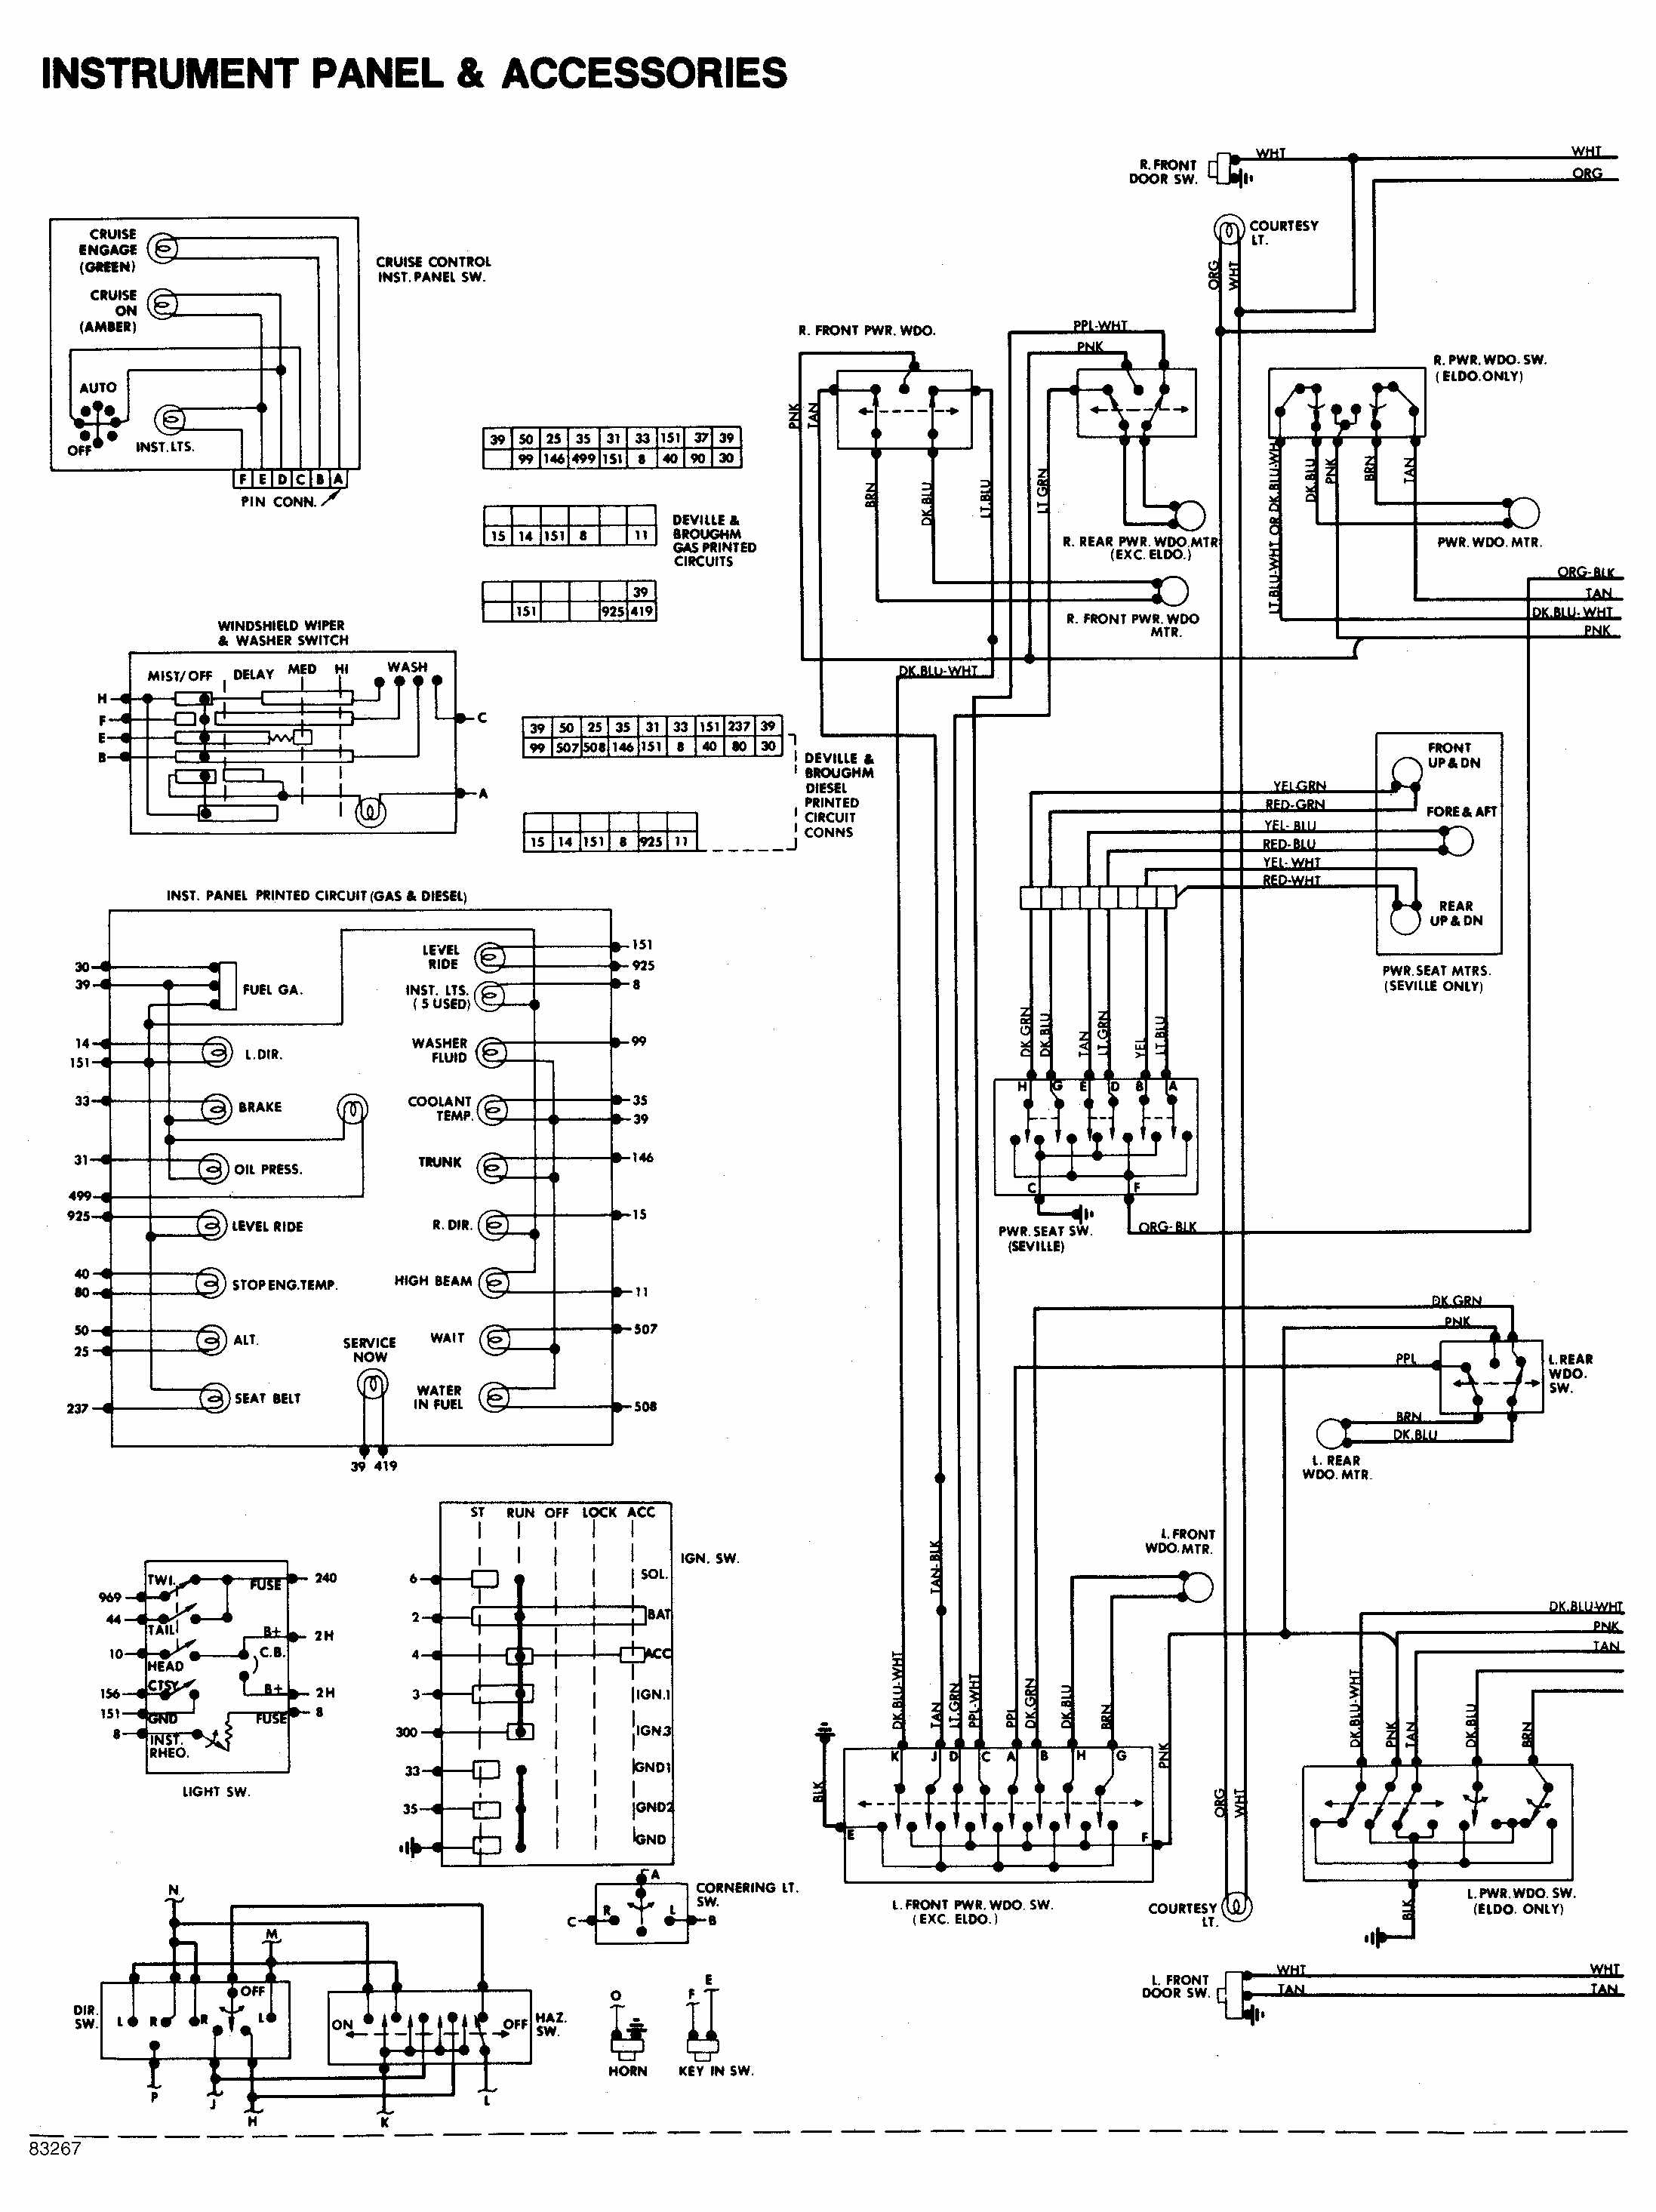 instrument panel and accessories wiring diagram of 1984 cadillac deville alternator wiring diagram 1998 chevrolet camaro great installation